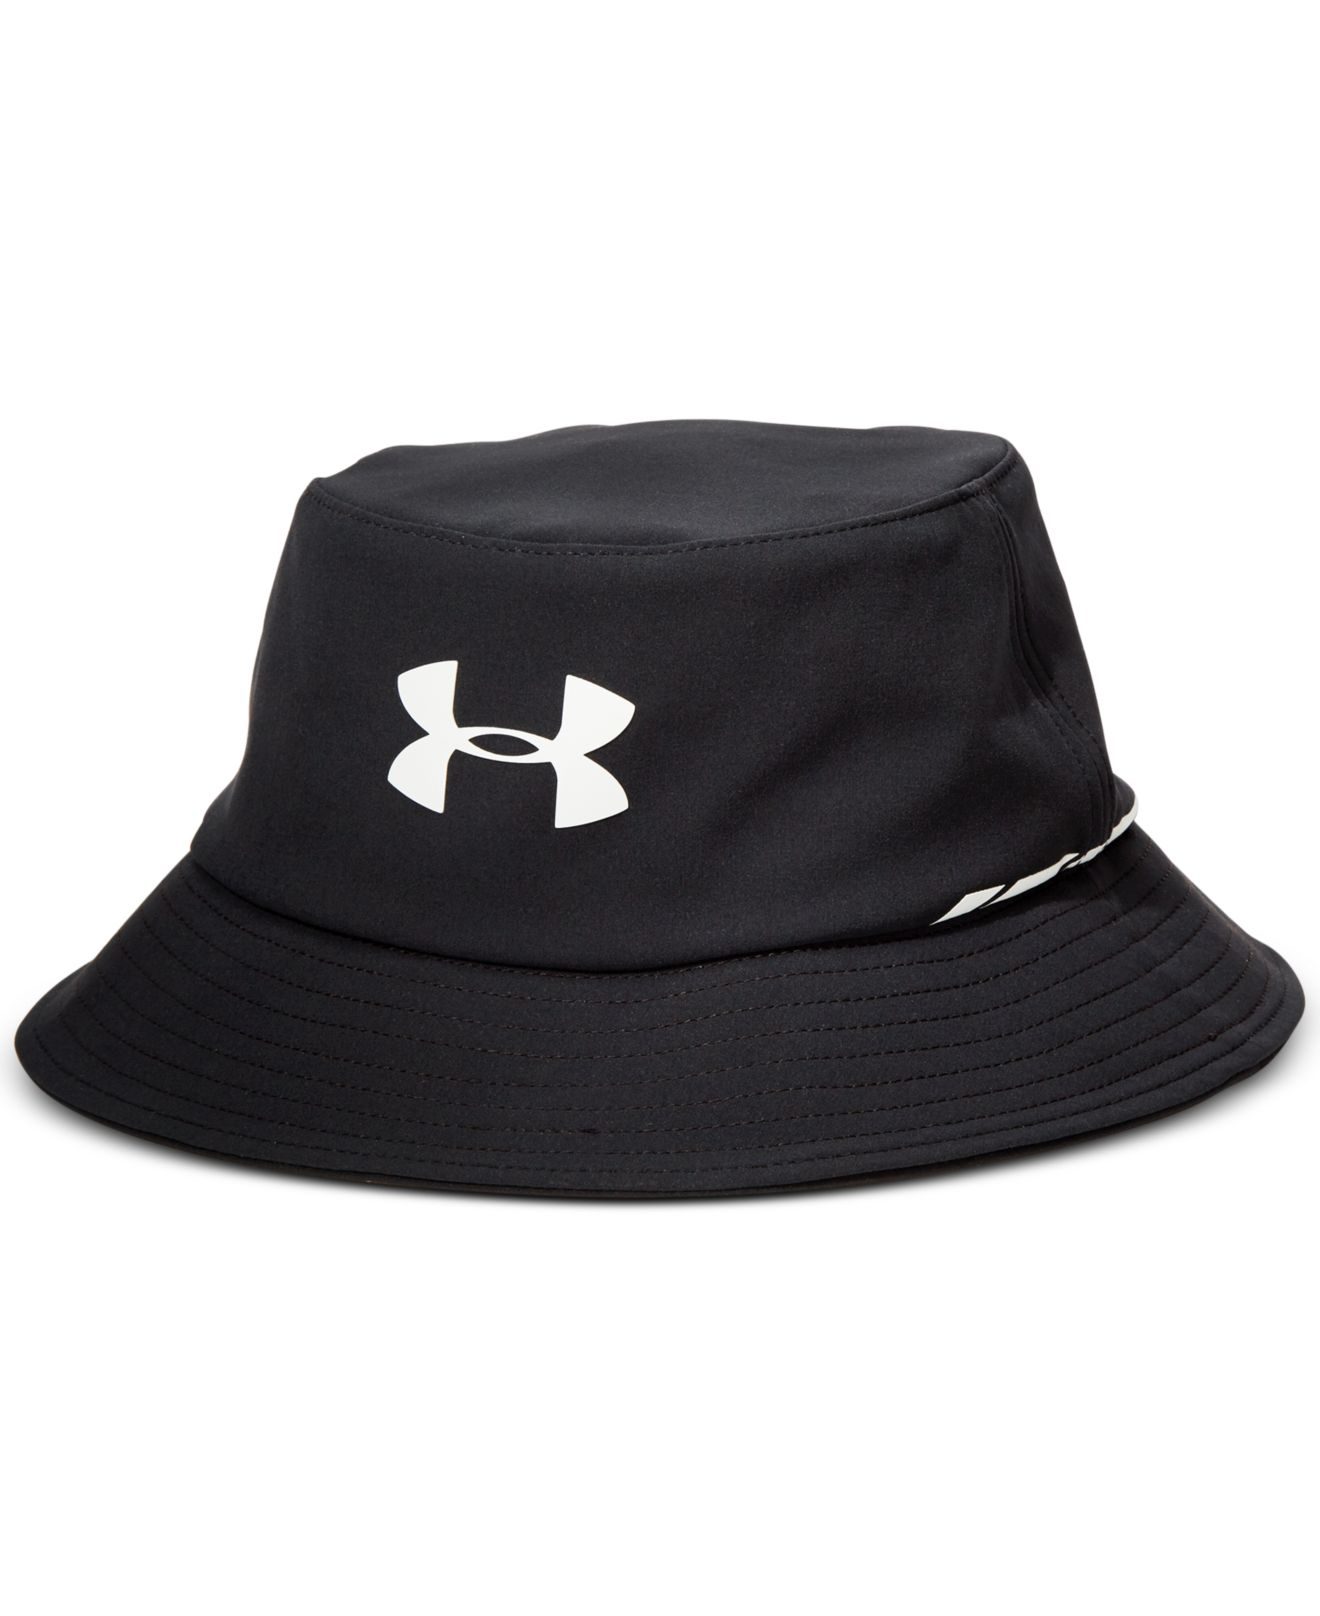 Lyst - Under Armour Elements Water-resistant Golf Bucket Hat in ... eb76a2649ba